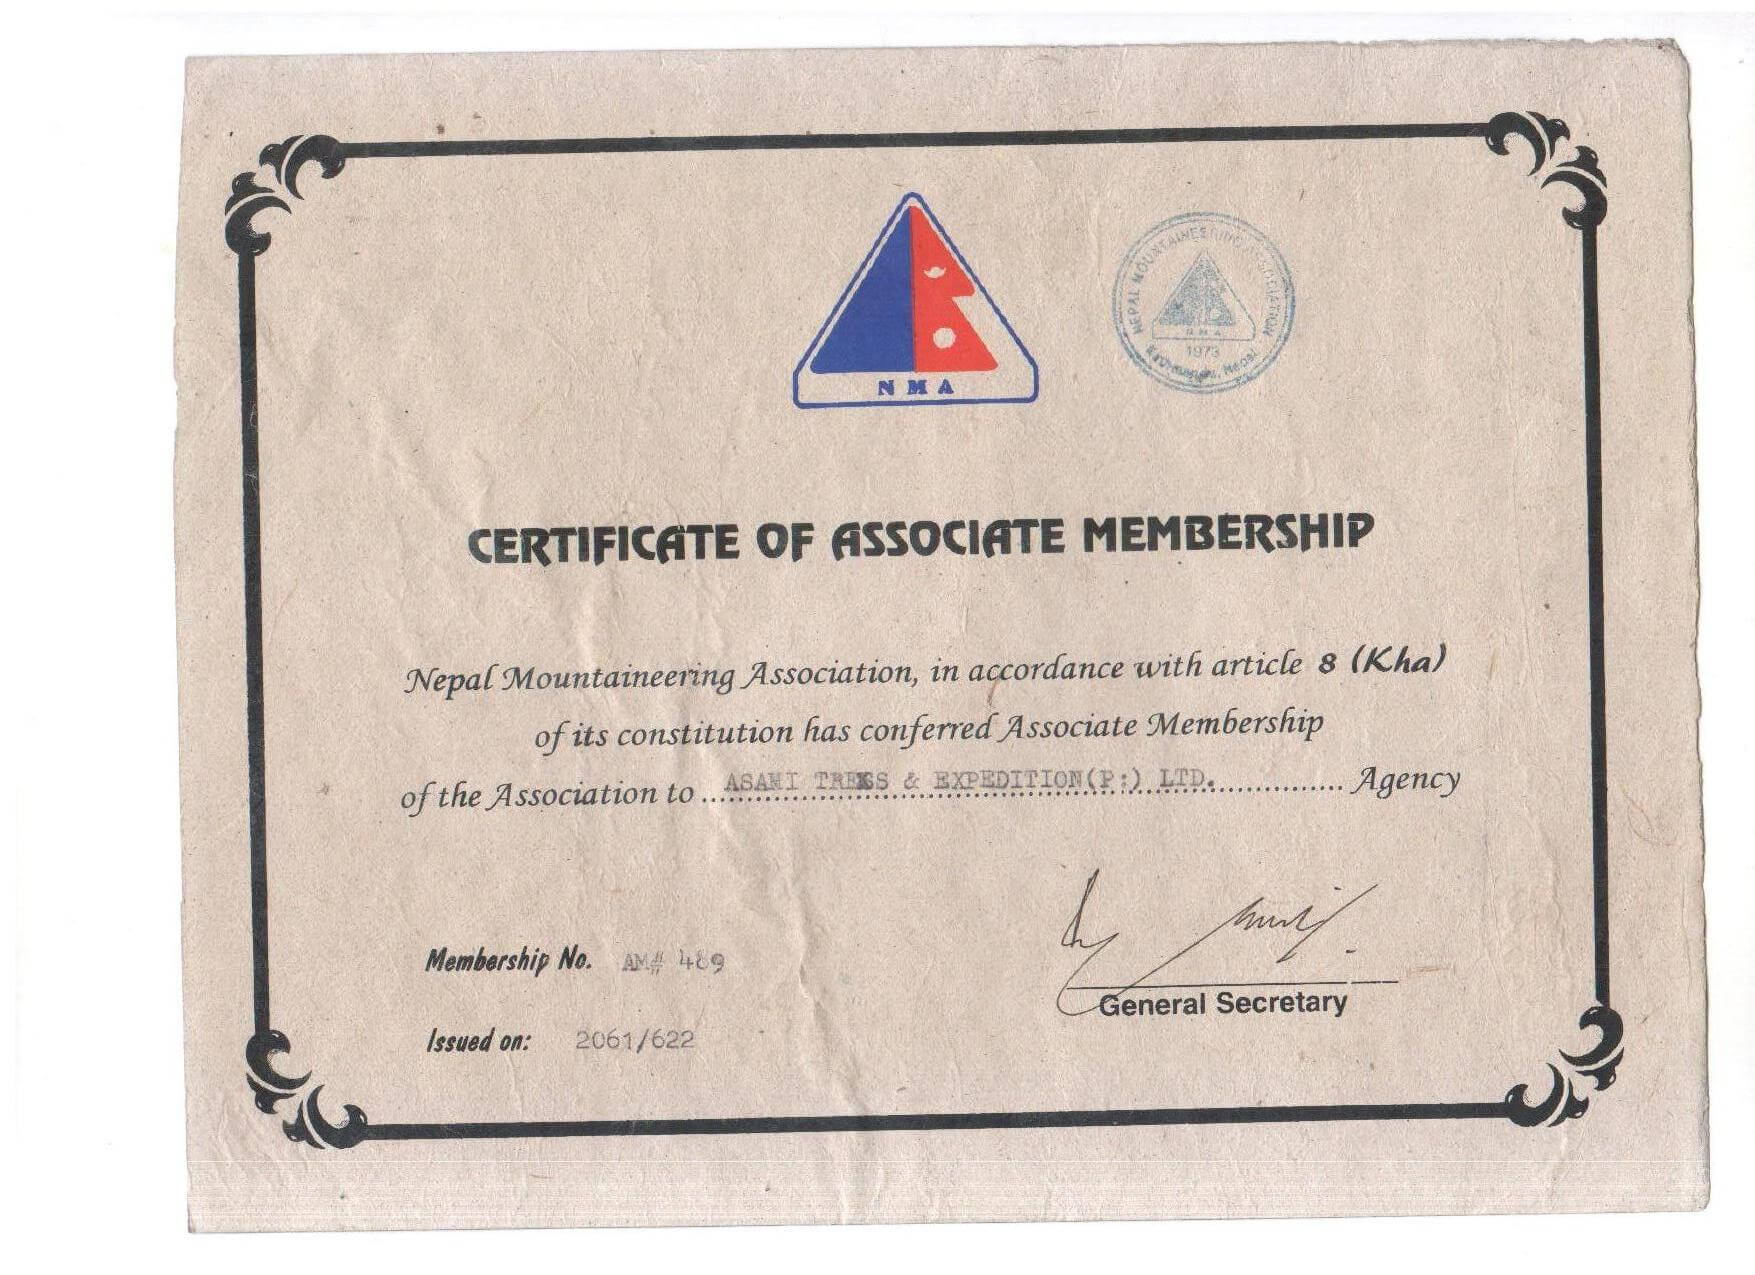 president of organizations certifies document